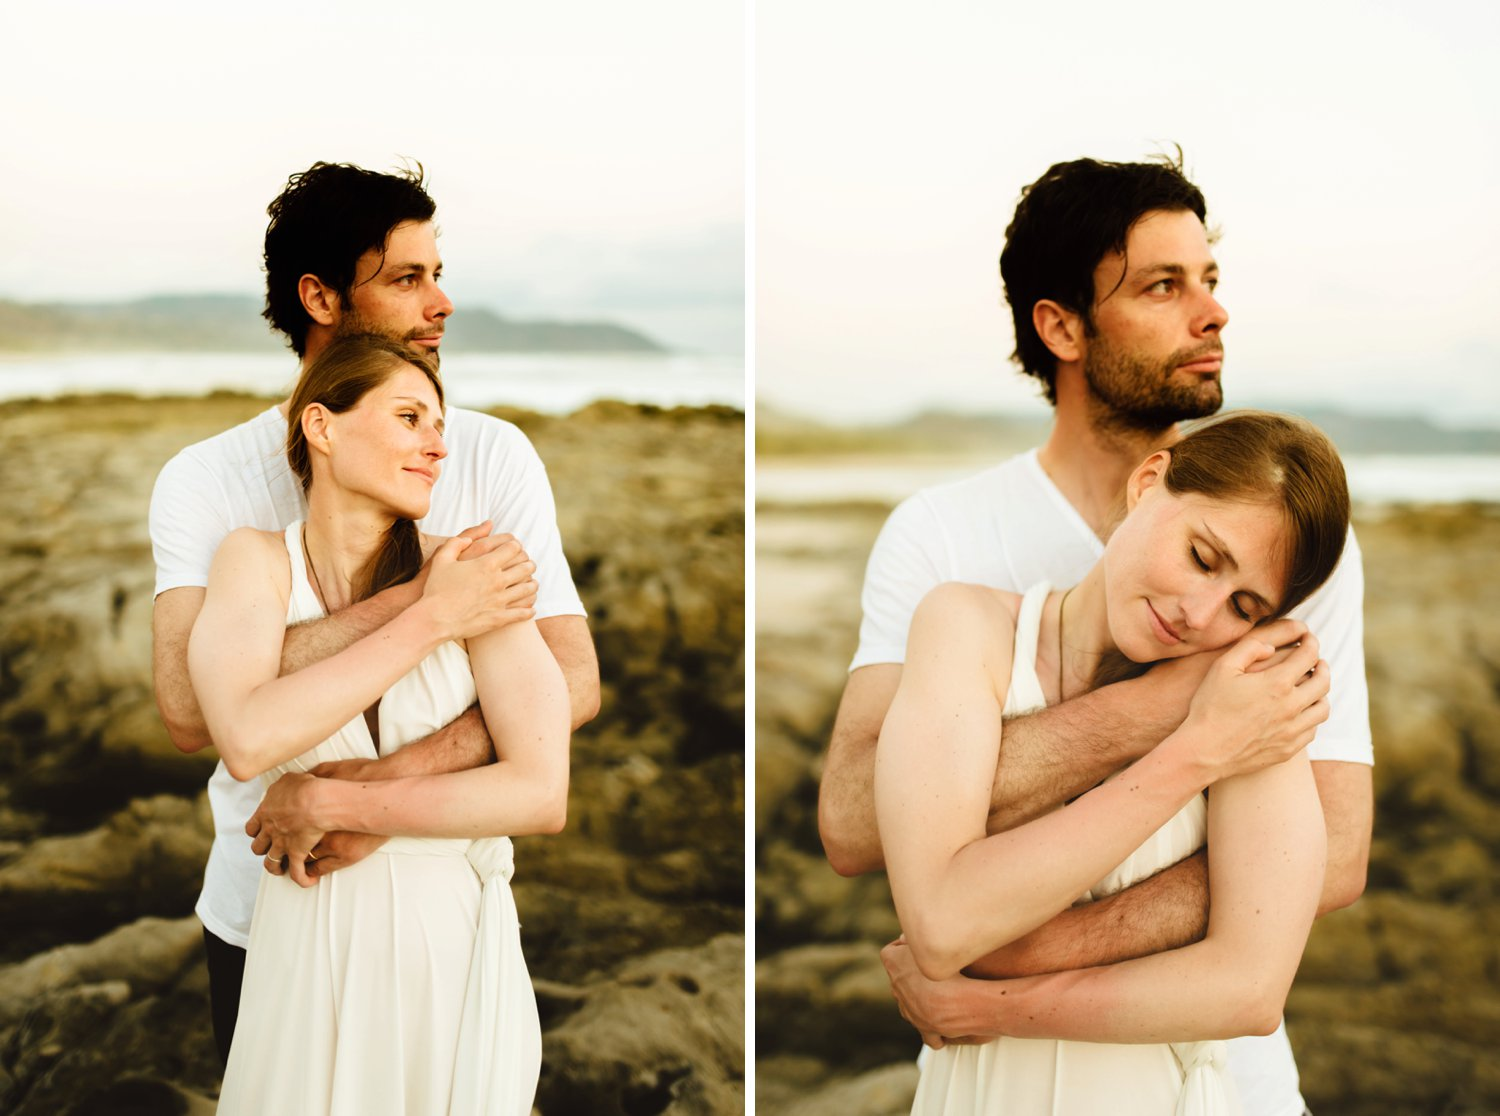 This couple is so intimate and in love. I adore these photos from their destination beach elopement in Costa Rica!  Beach wedding photography by destination wedding photographer, Maddie Mae.